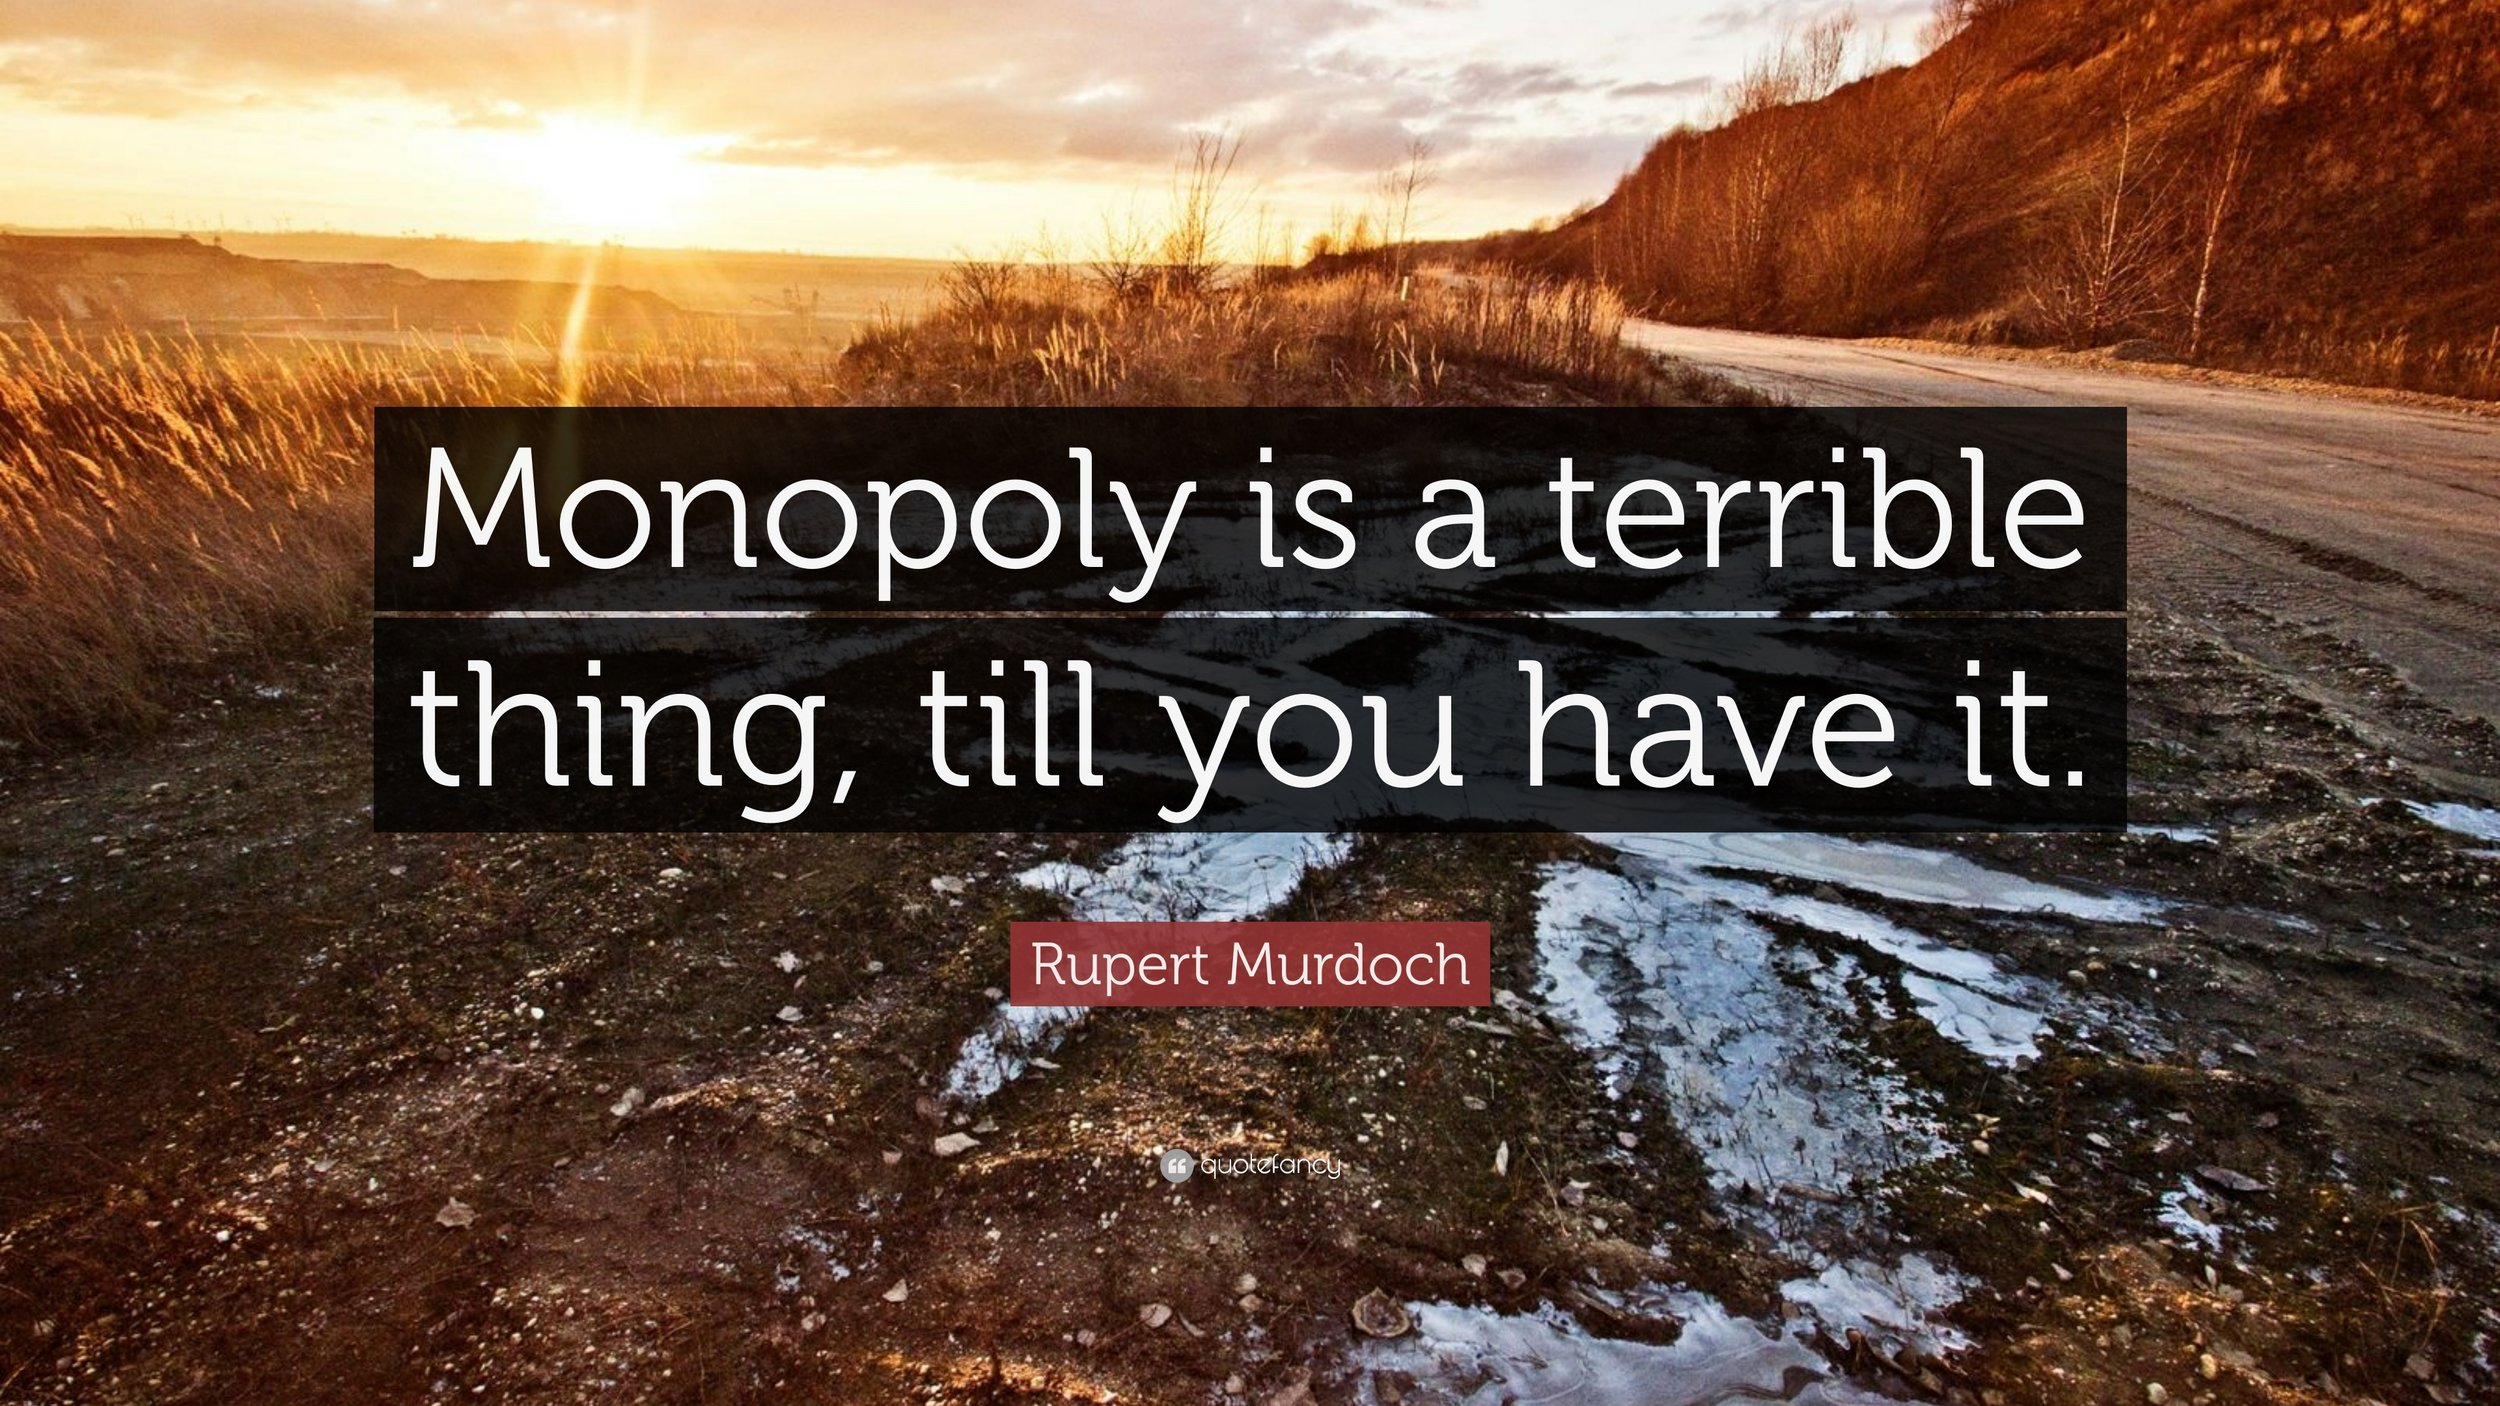 1033049-Rupert-Murdoch-Quote-Monopoly-is-a-terrible-thing-till-you-have-it.jpg